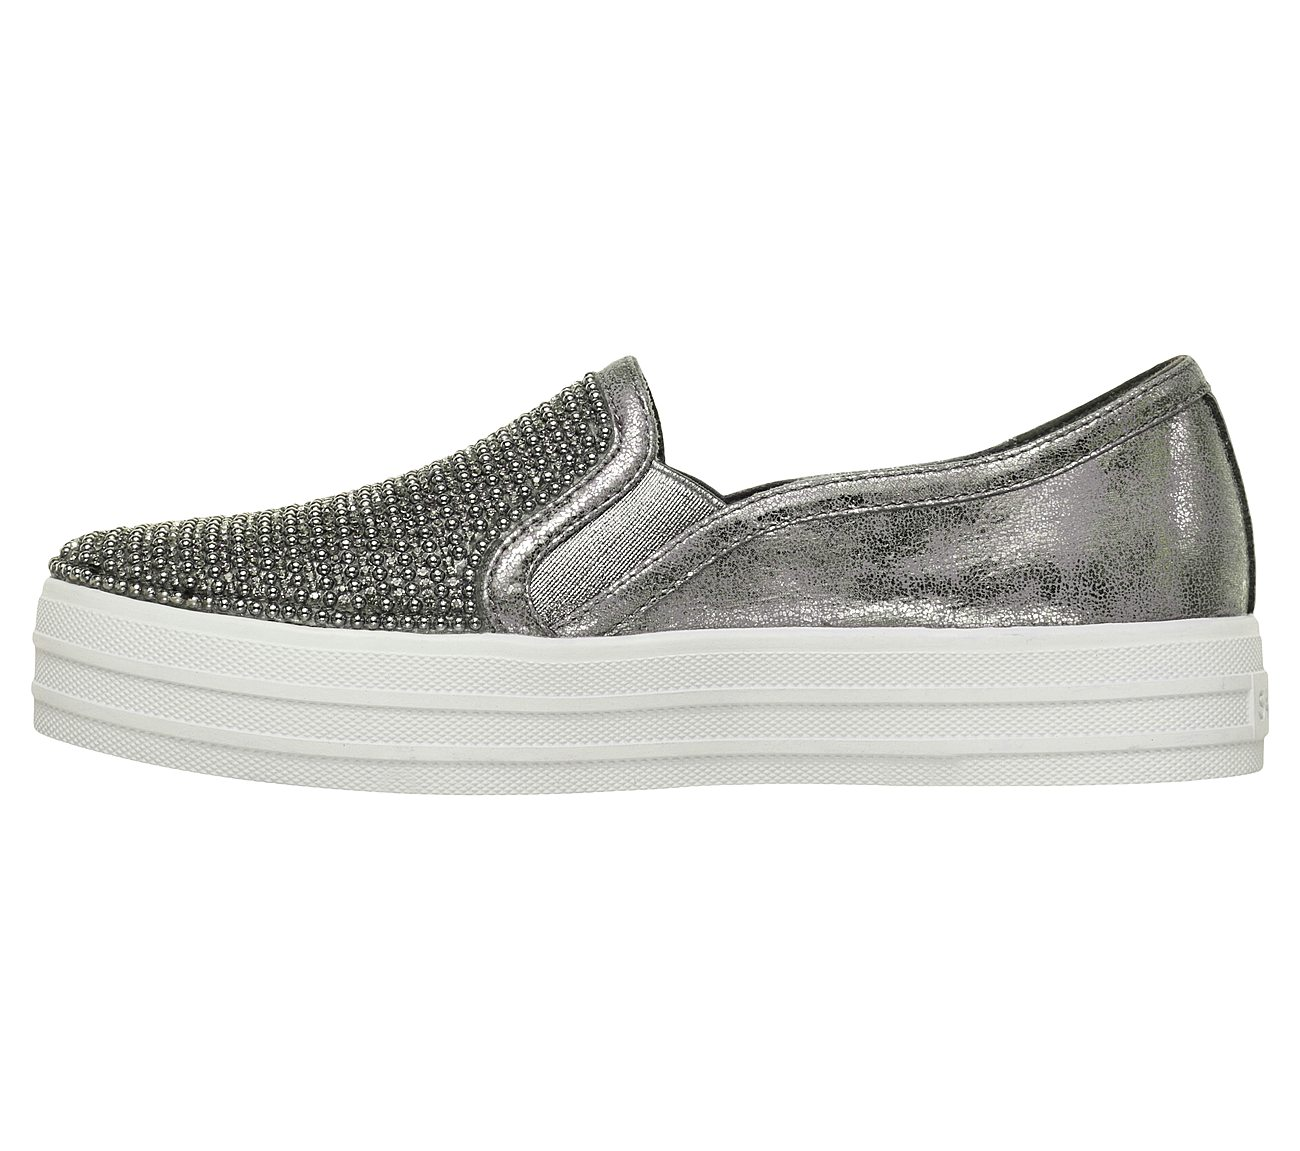 df4f7fa455f Buy SKECHERS Double Up - Shiny Dancer SKECHER Street Shoes only  55.00